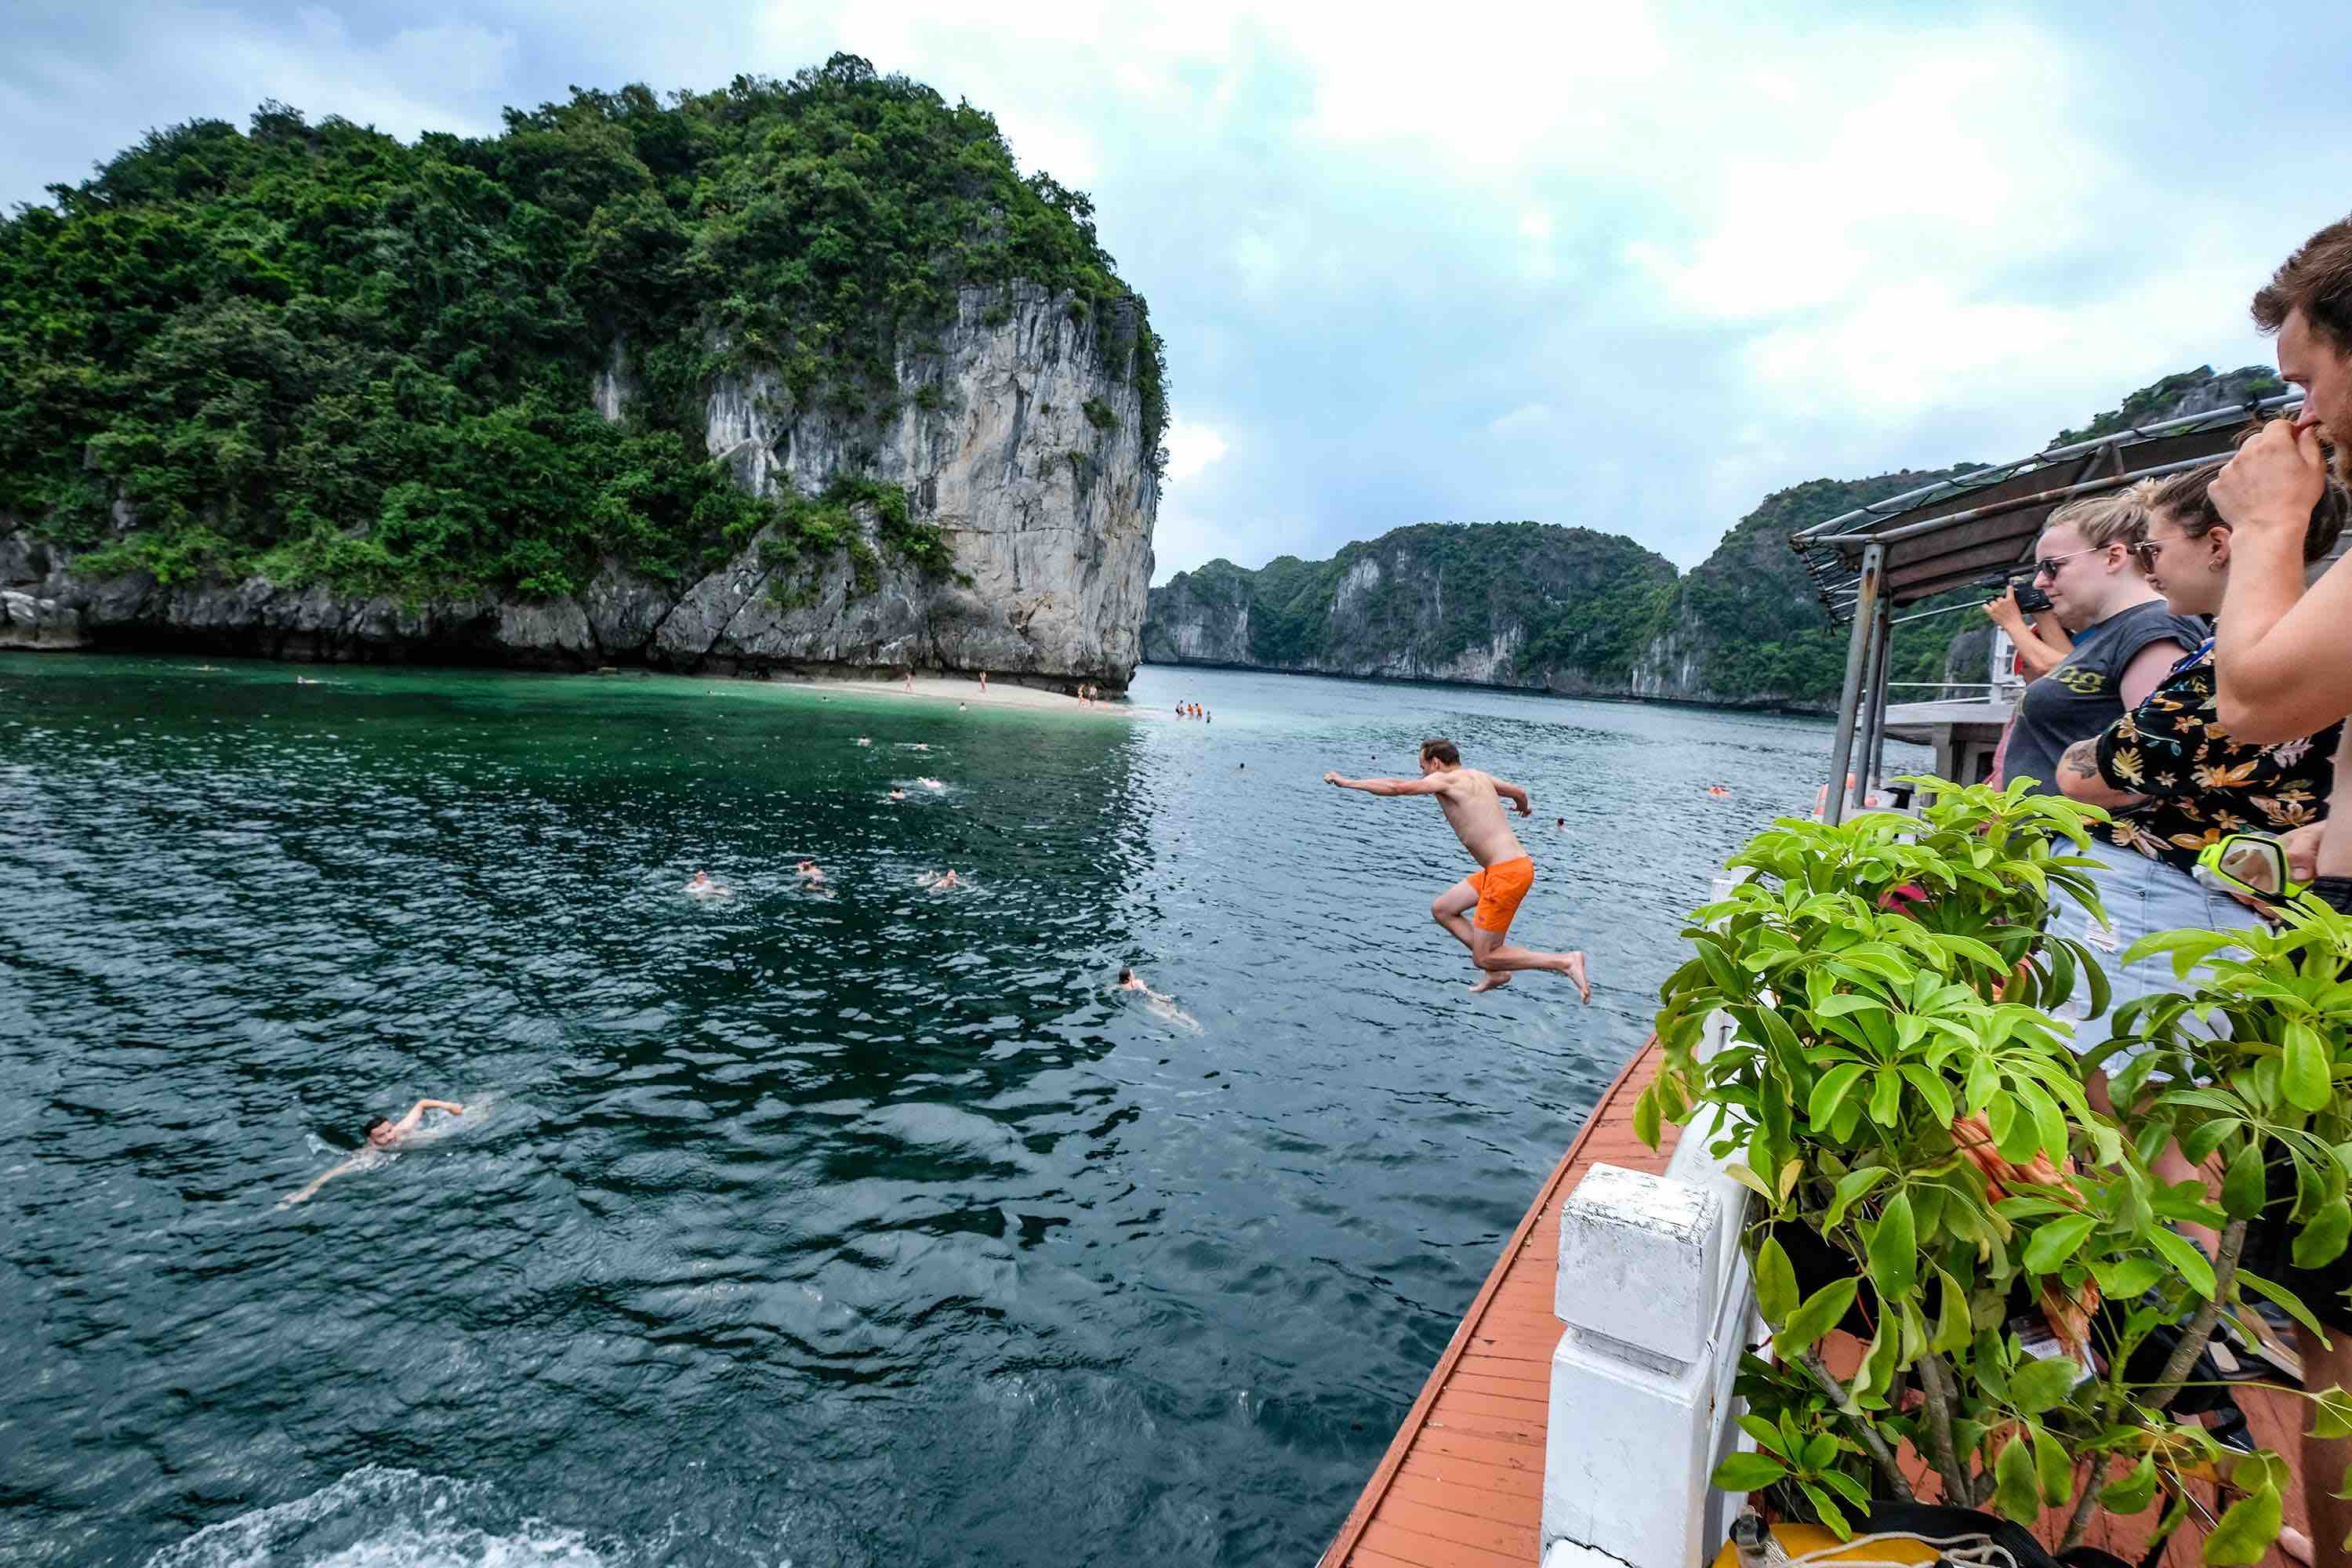 A tourist jumps into the water at Lan Ha Bay, Cat Hai District, Hai Phong City. Photo: Nam Tran / Tuoi Tre